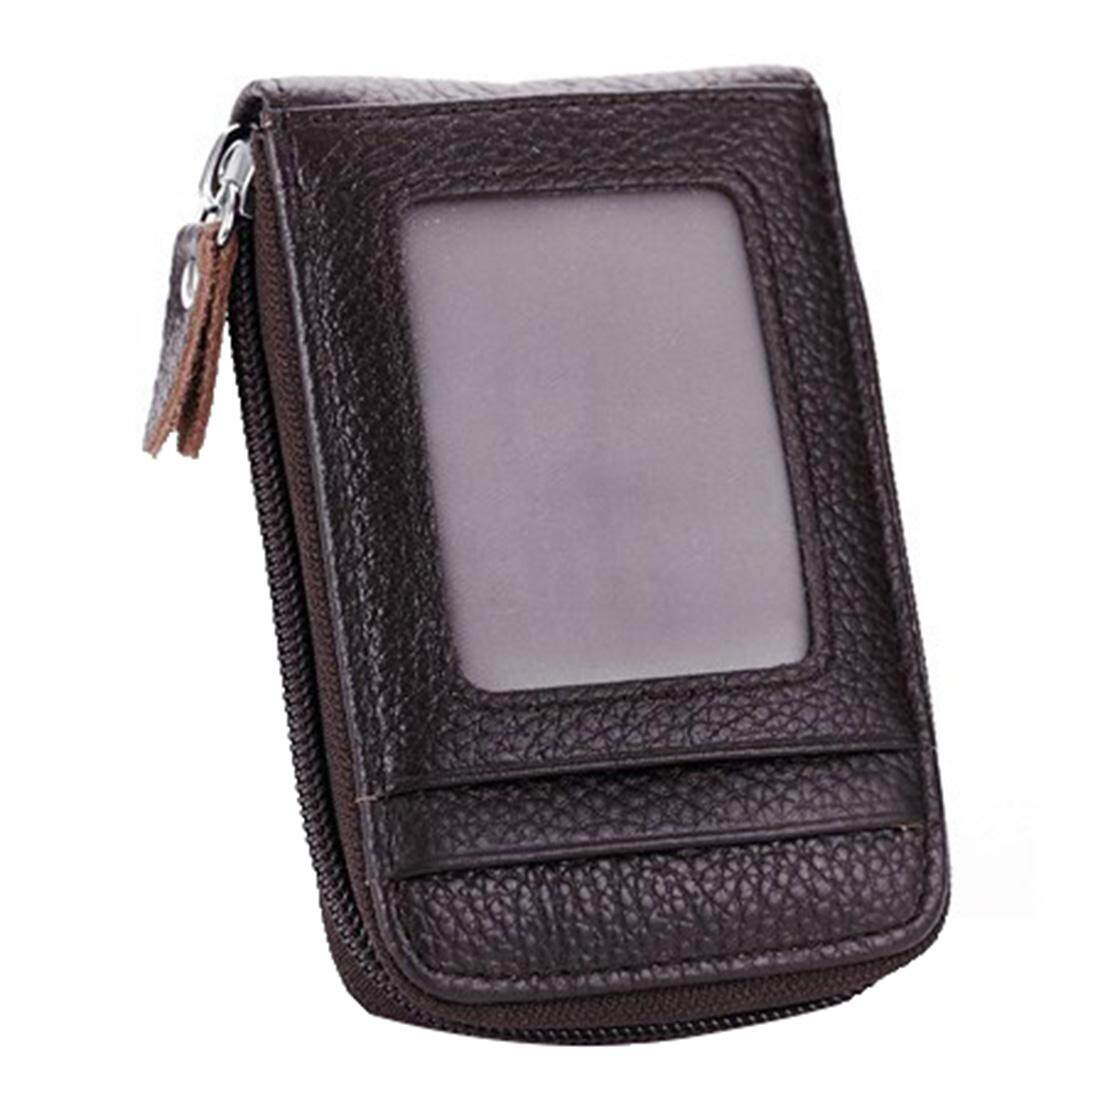 Card Holder Wallets High Quality Female Credit Card Holders Women Pillow Organizer Purse(Coffee)